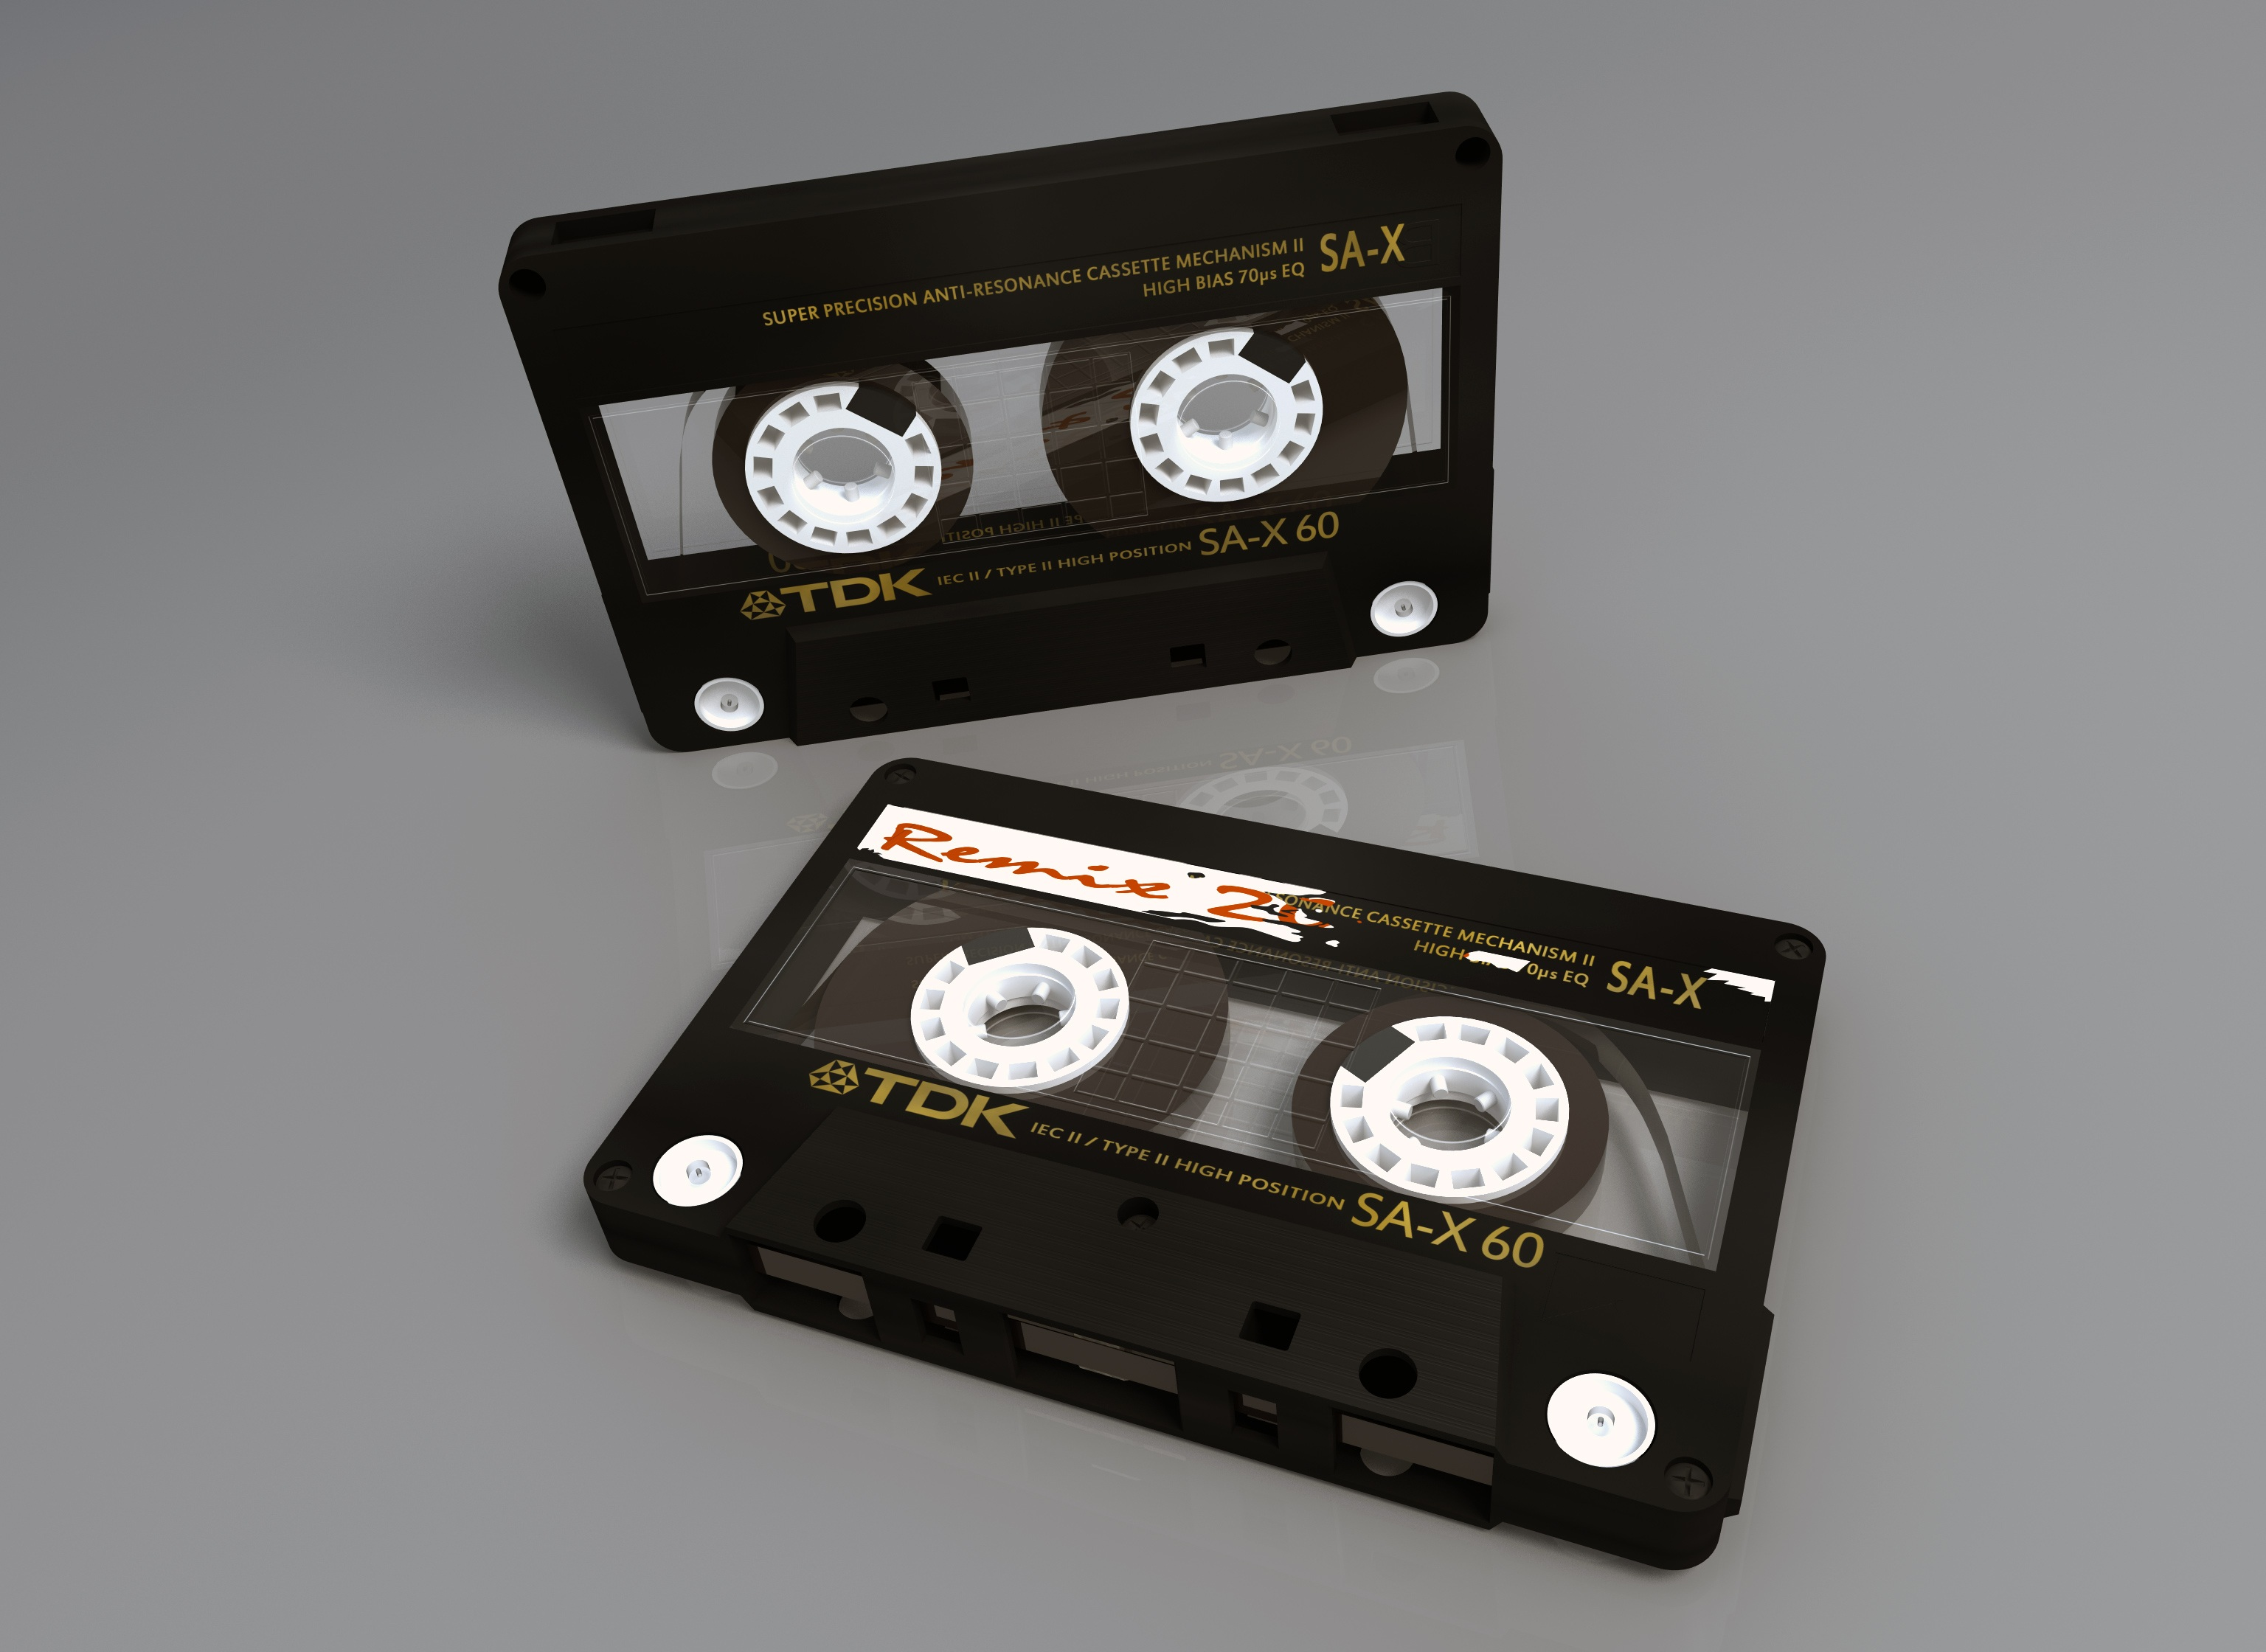 White Tape Black And White Cassette Tape Free Stock Photo